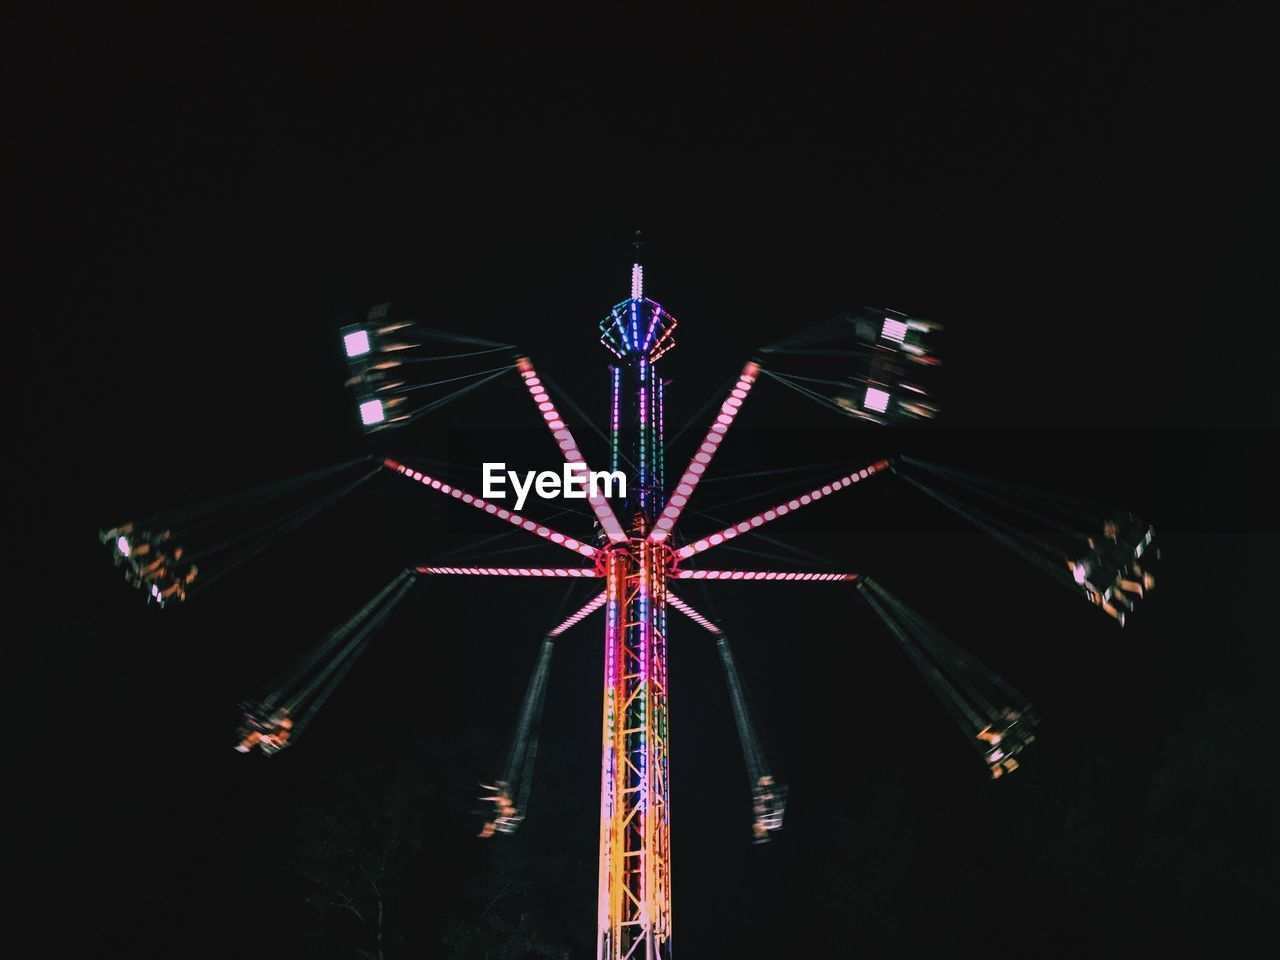 Low Angle View Of People Enjoying Illuminated Chain Swing Ride Against Sky At Night